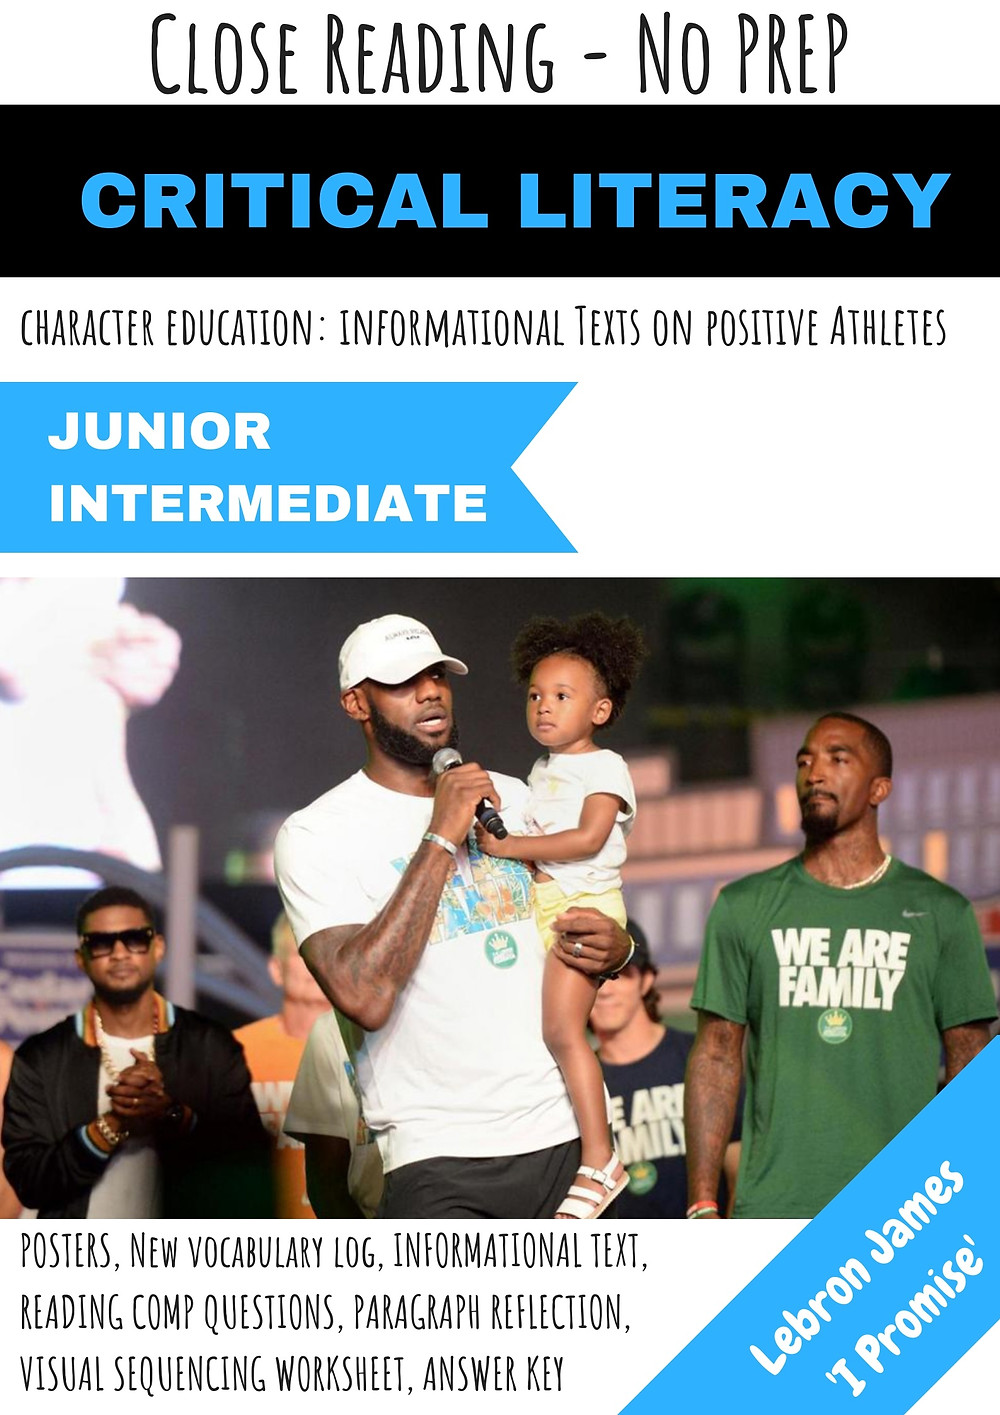 Lebron James NBA Basketball Close Reading Informational Text Teacher Resource Character Education I Promise School Miss Cats Classroom TpT teachers pay teachers